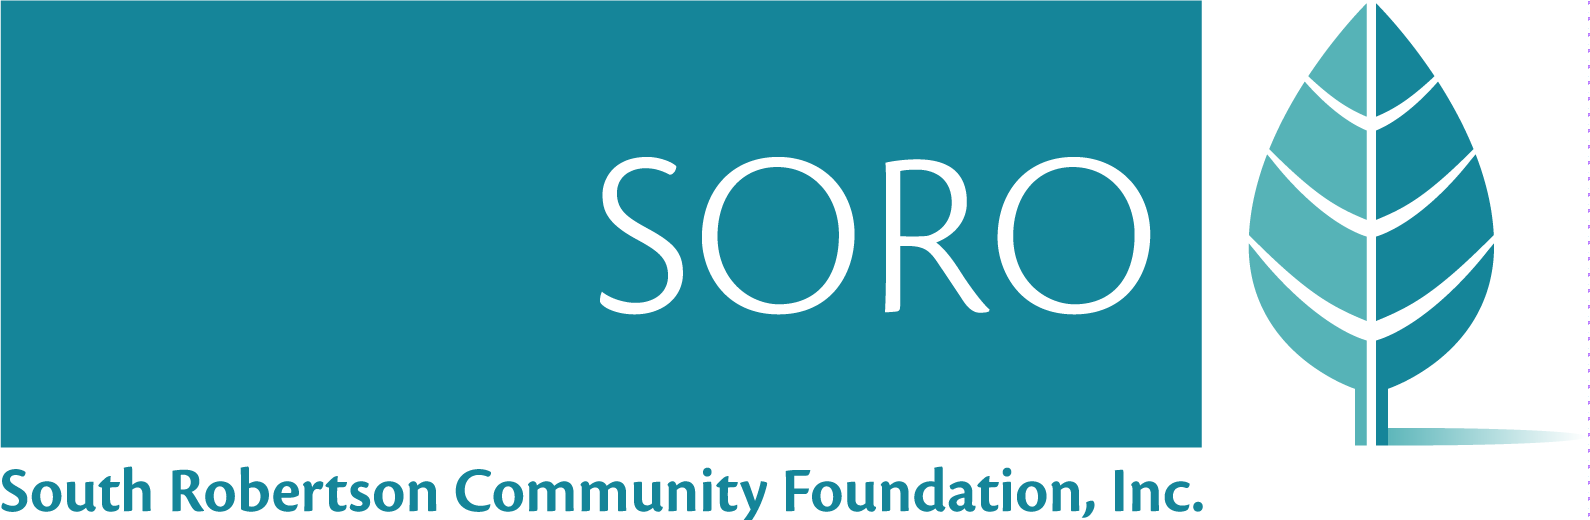 SoRo Community Foundation, Inc.